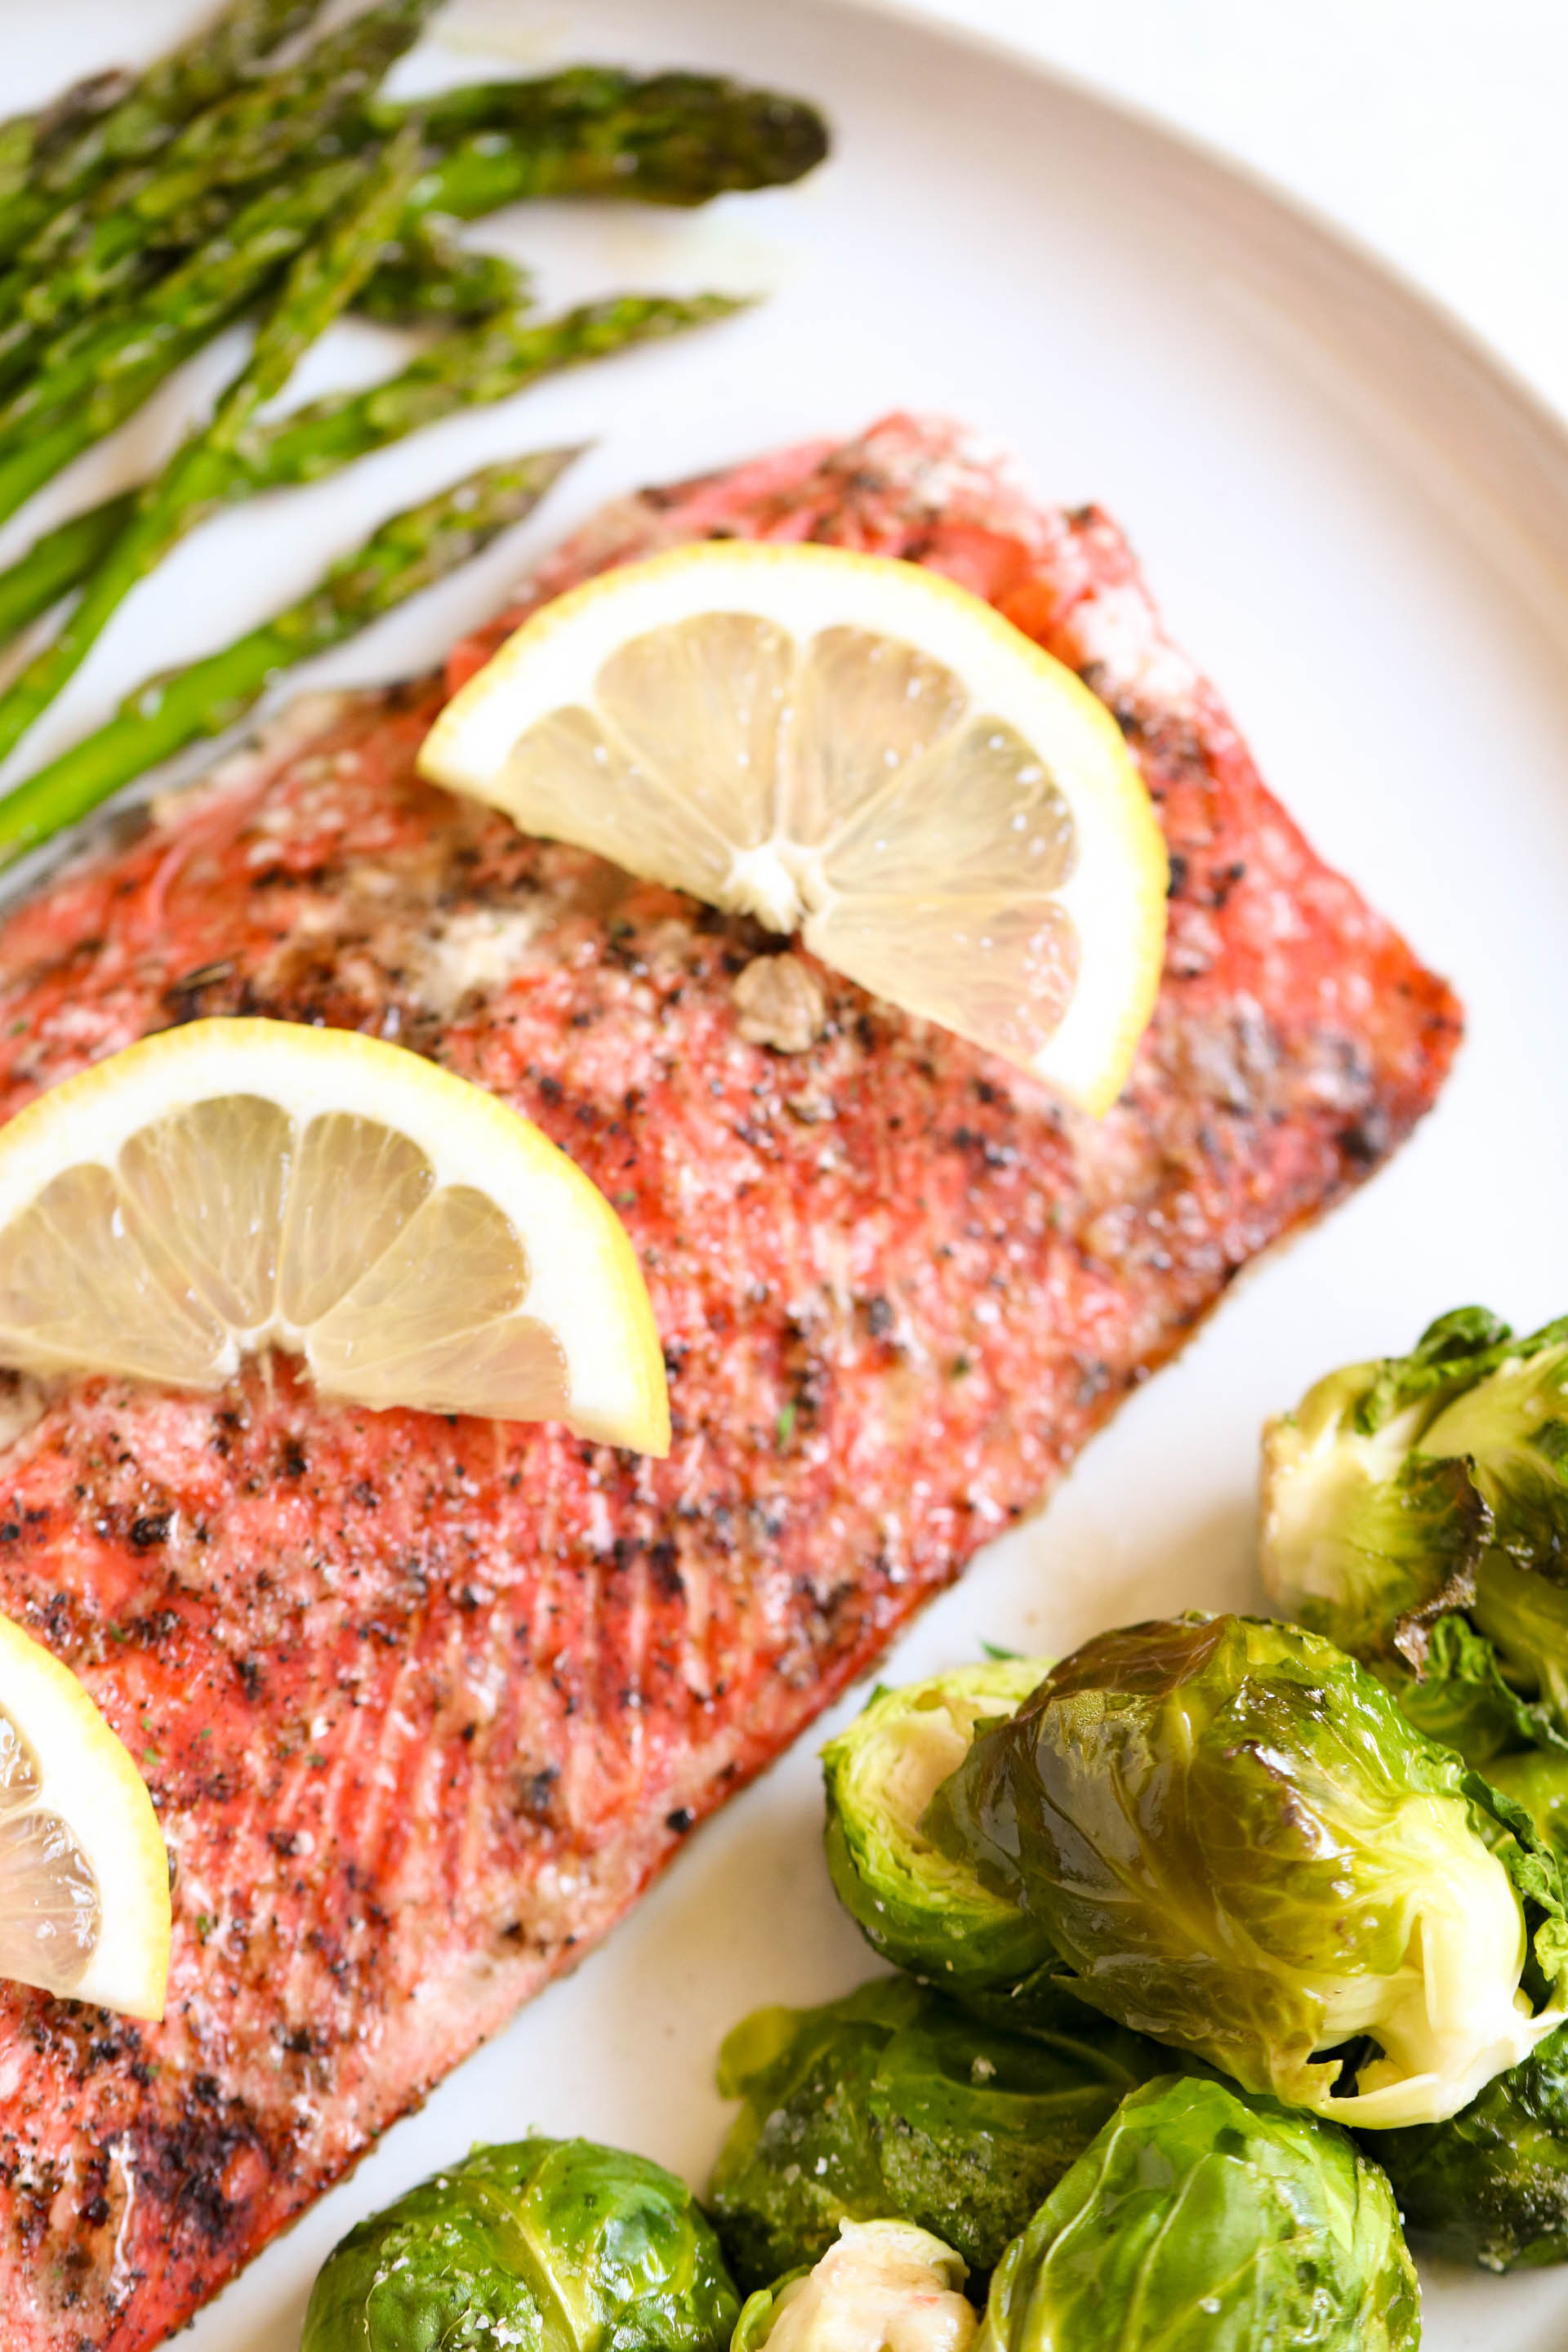 Baked salmon topped with lemons on a pan with brussels sprouts and asparagus